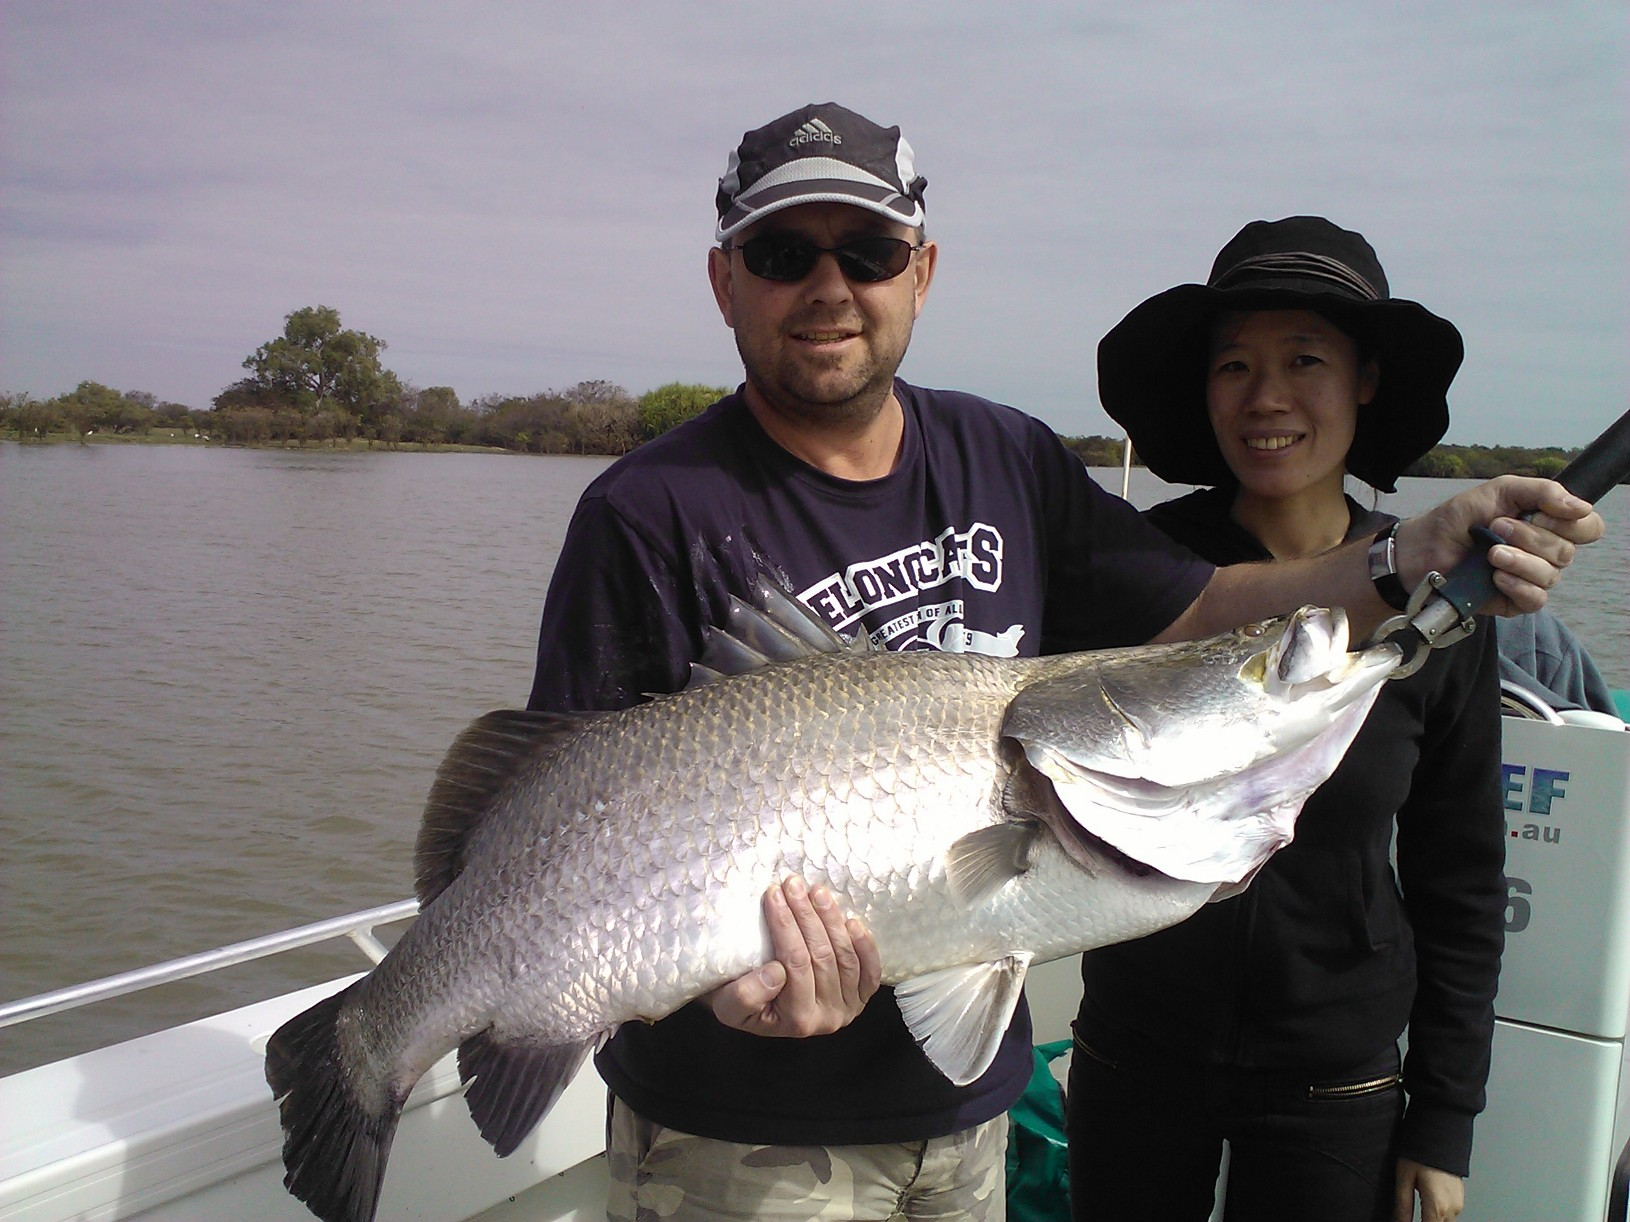 98cm 15kg Corroboree Billabong Barra for Peter Huf from China